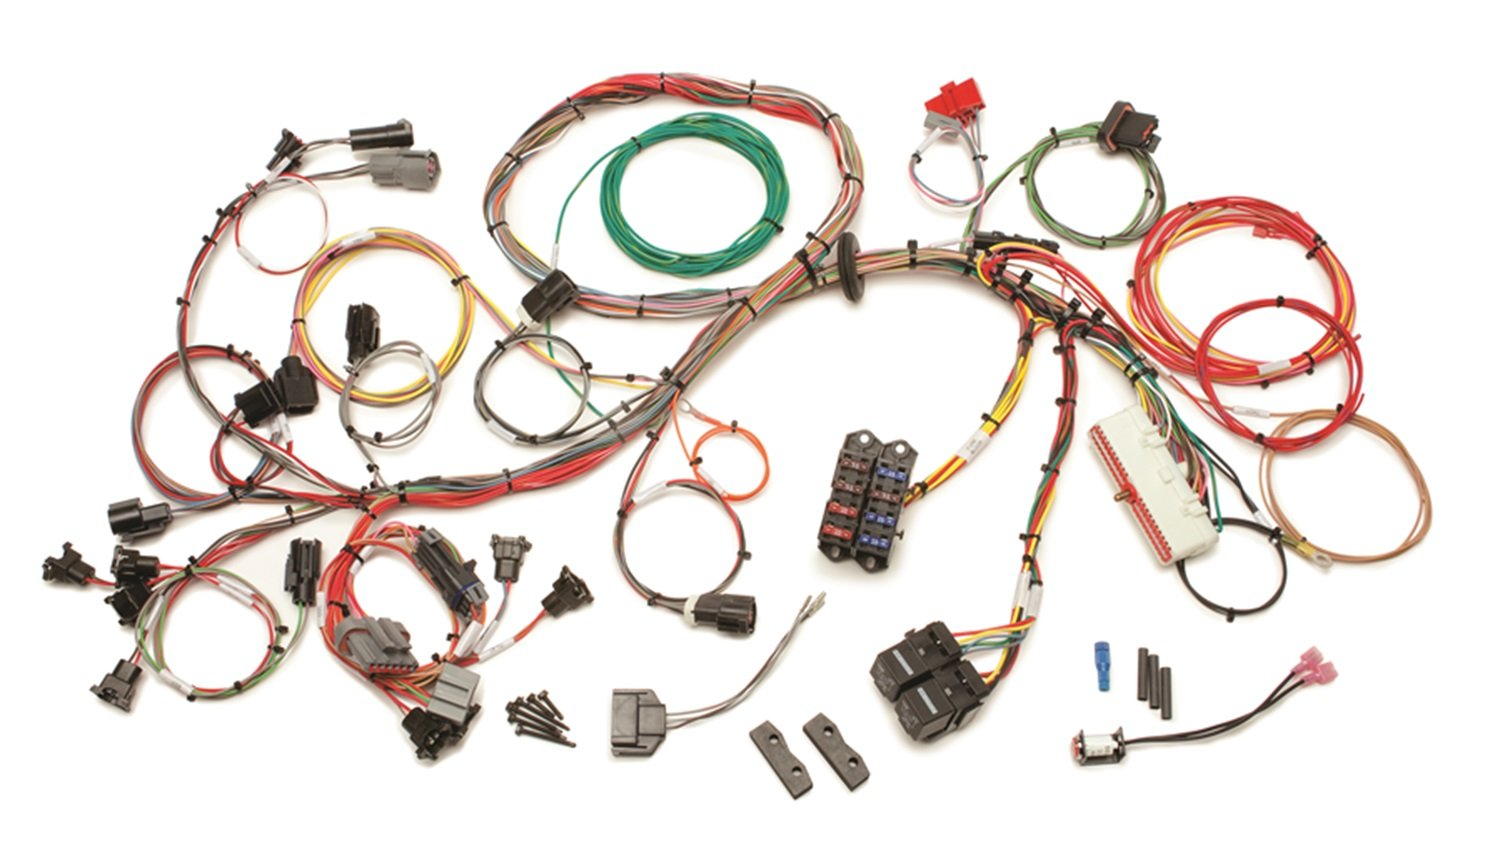 71UX1IBfleL._SL1500_ amazon com painless 60510 5 0l wiring harness automotive ford wiring harness at aneh.co